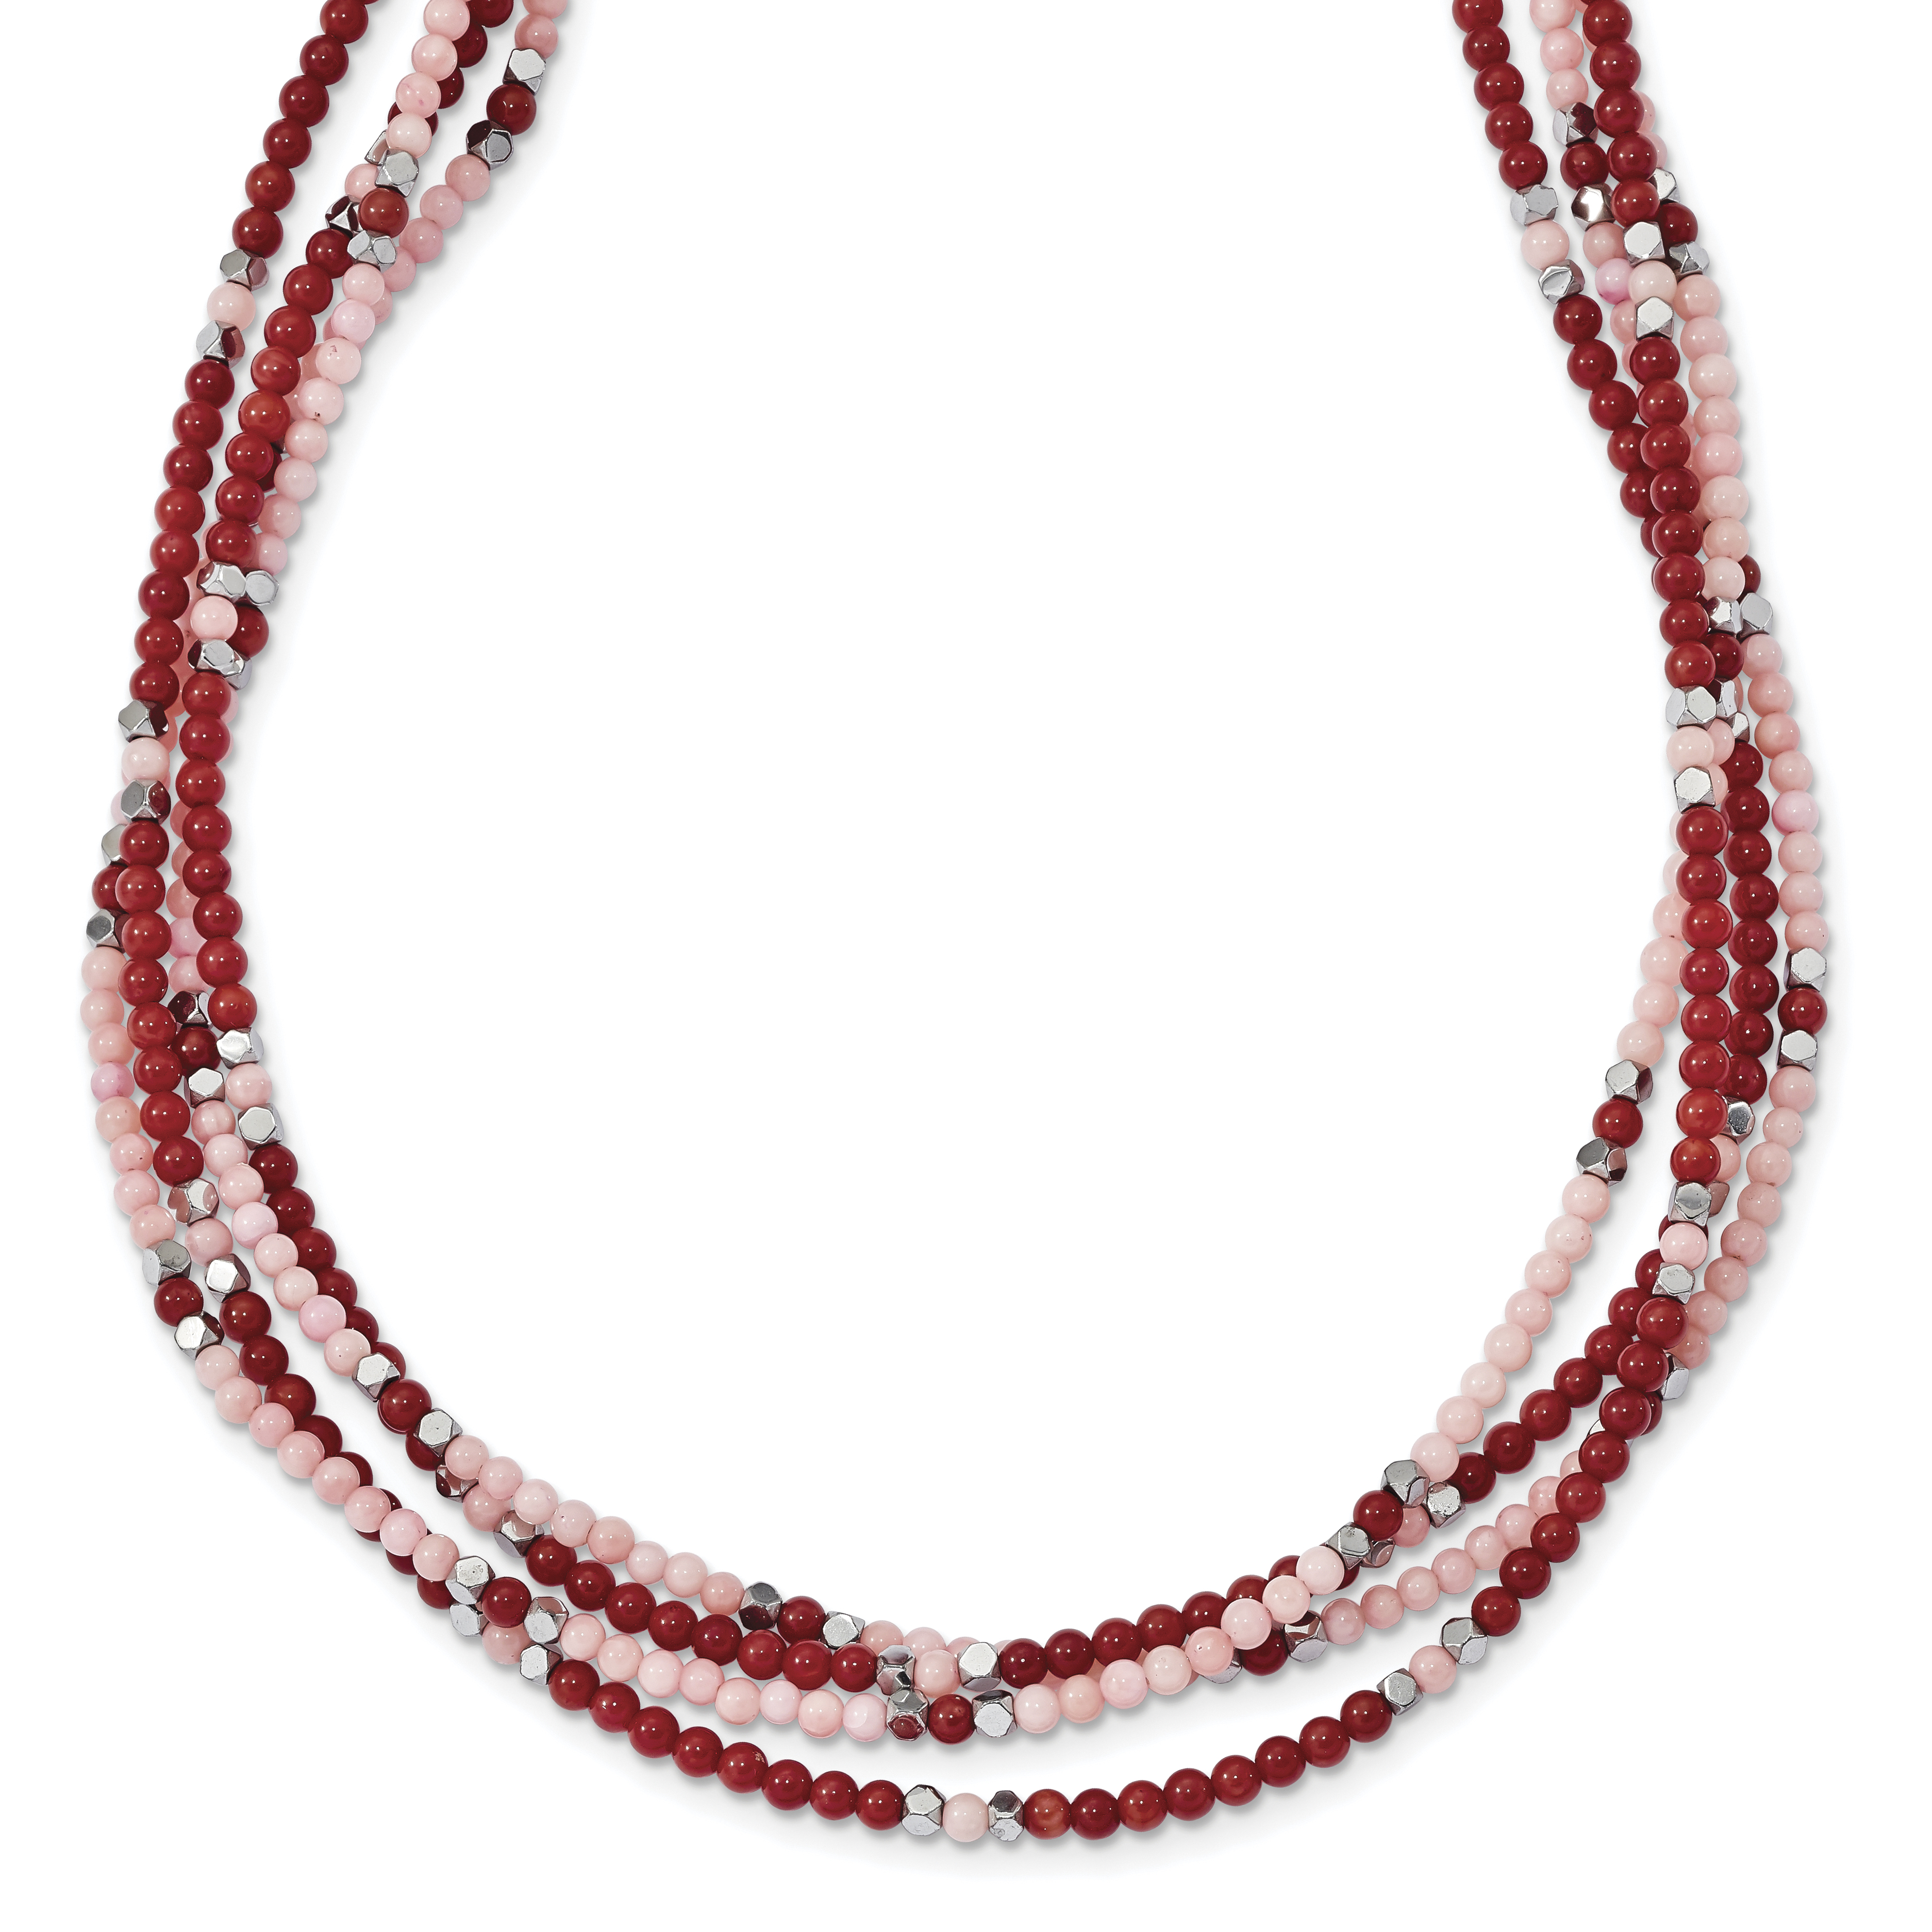 Sterling Silver Hematite Red & Peach Coral 3-Strand w 2in ext. Necklace by Core Silver